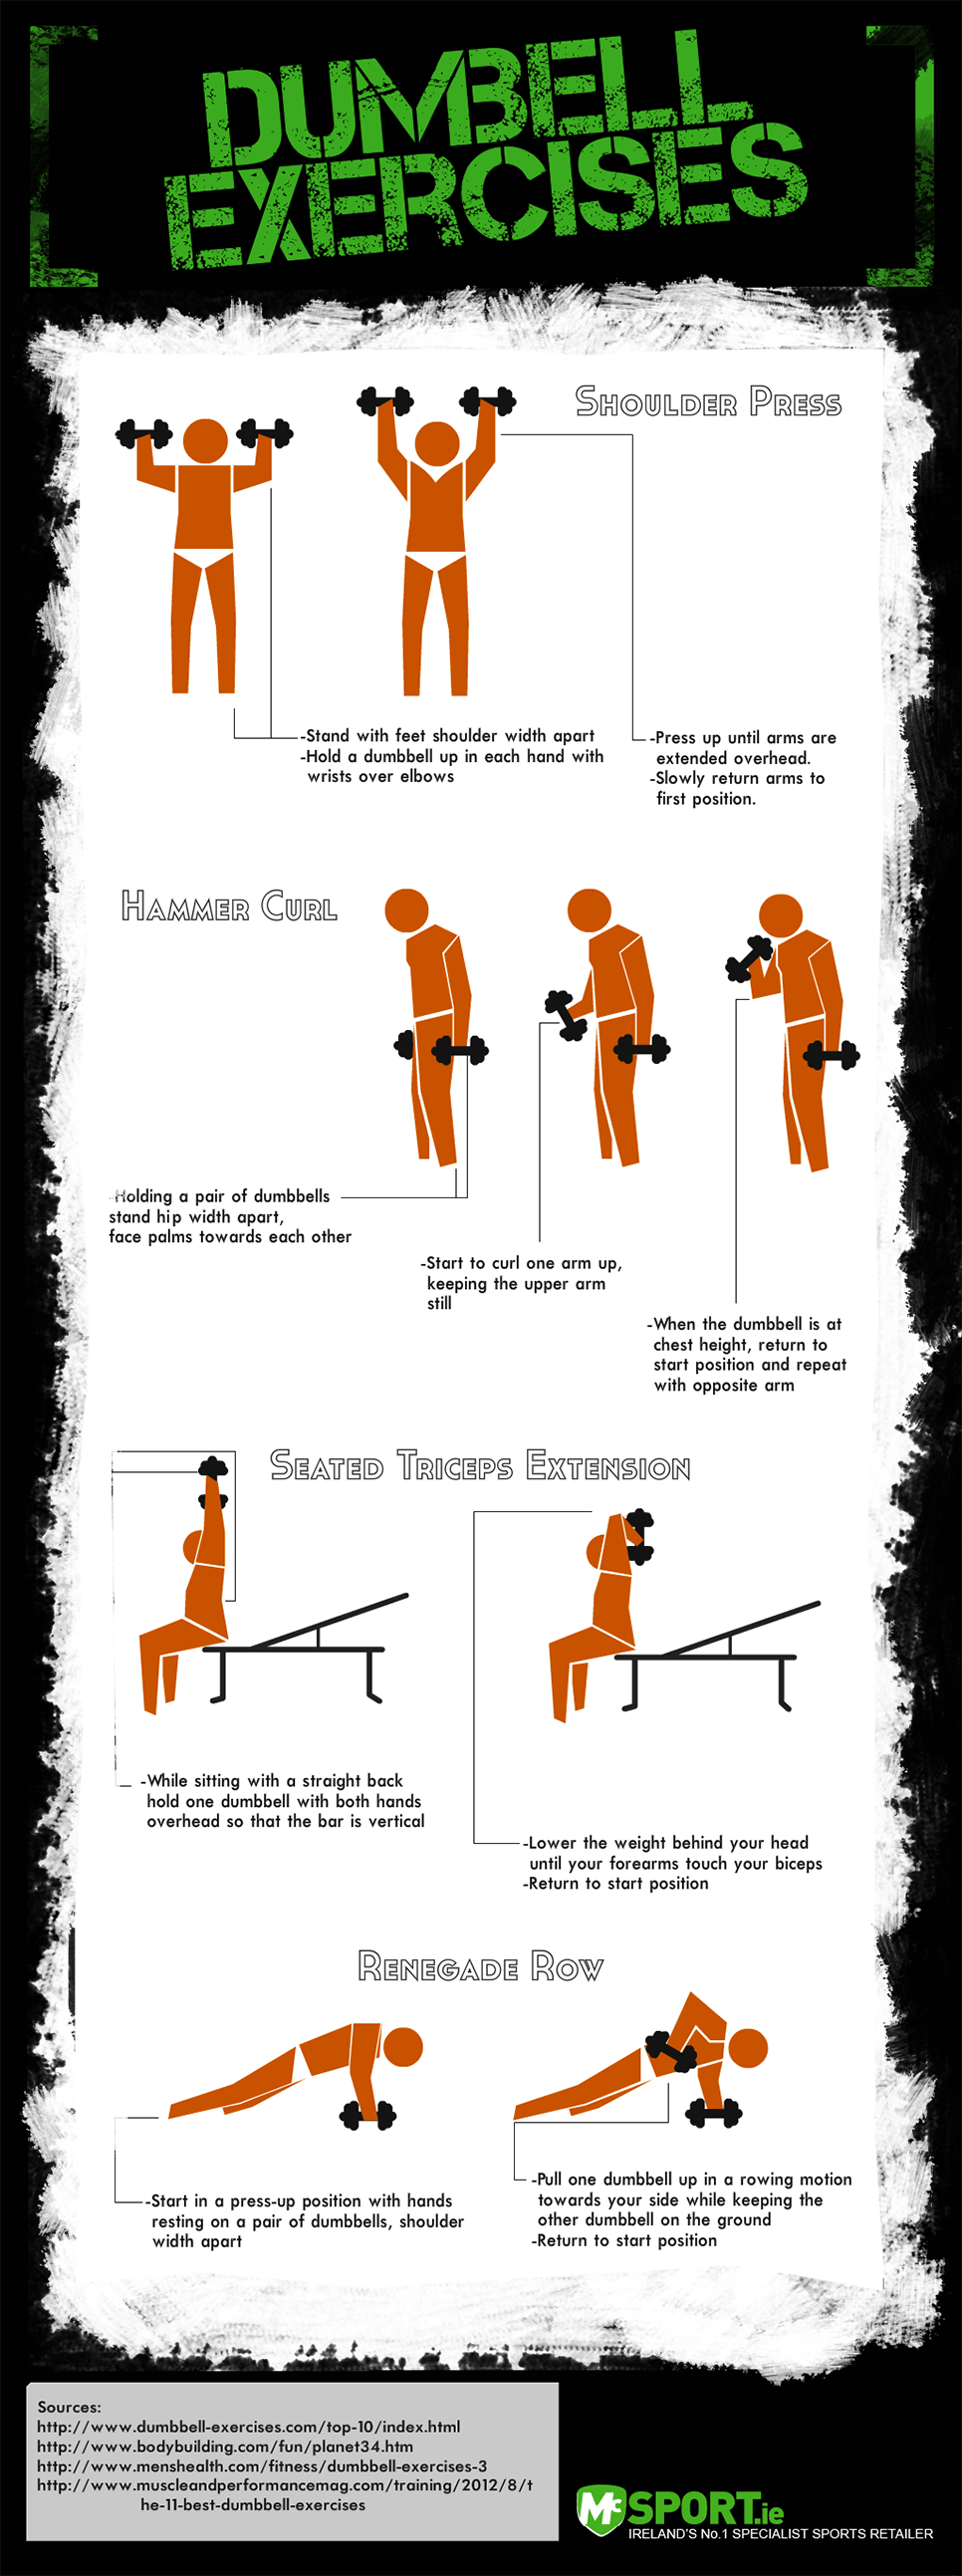 Dumbbell exercises infographic